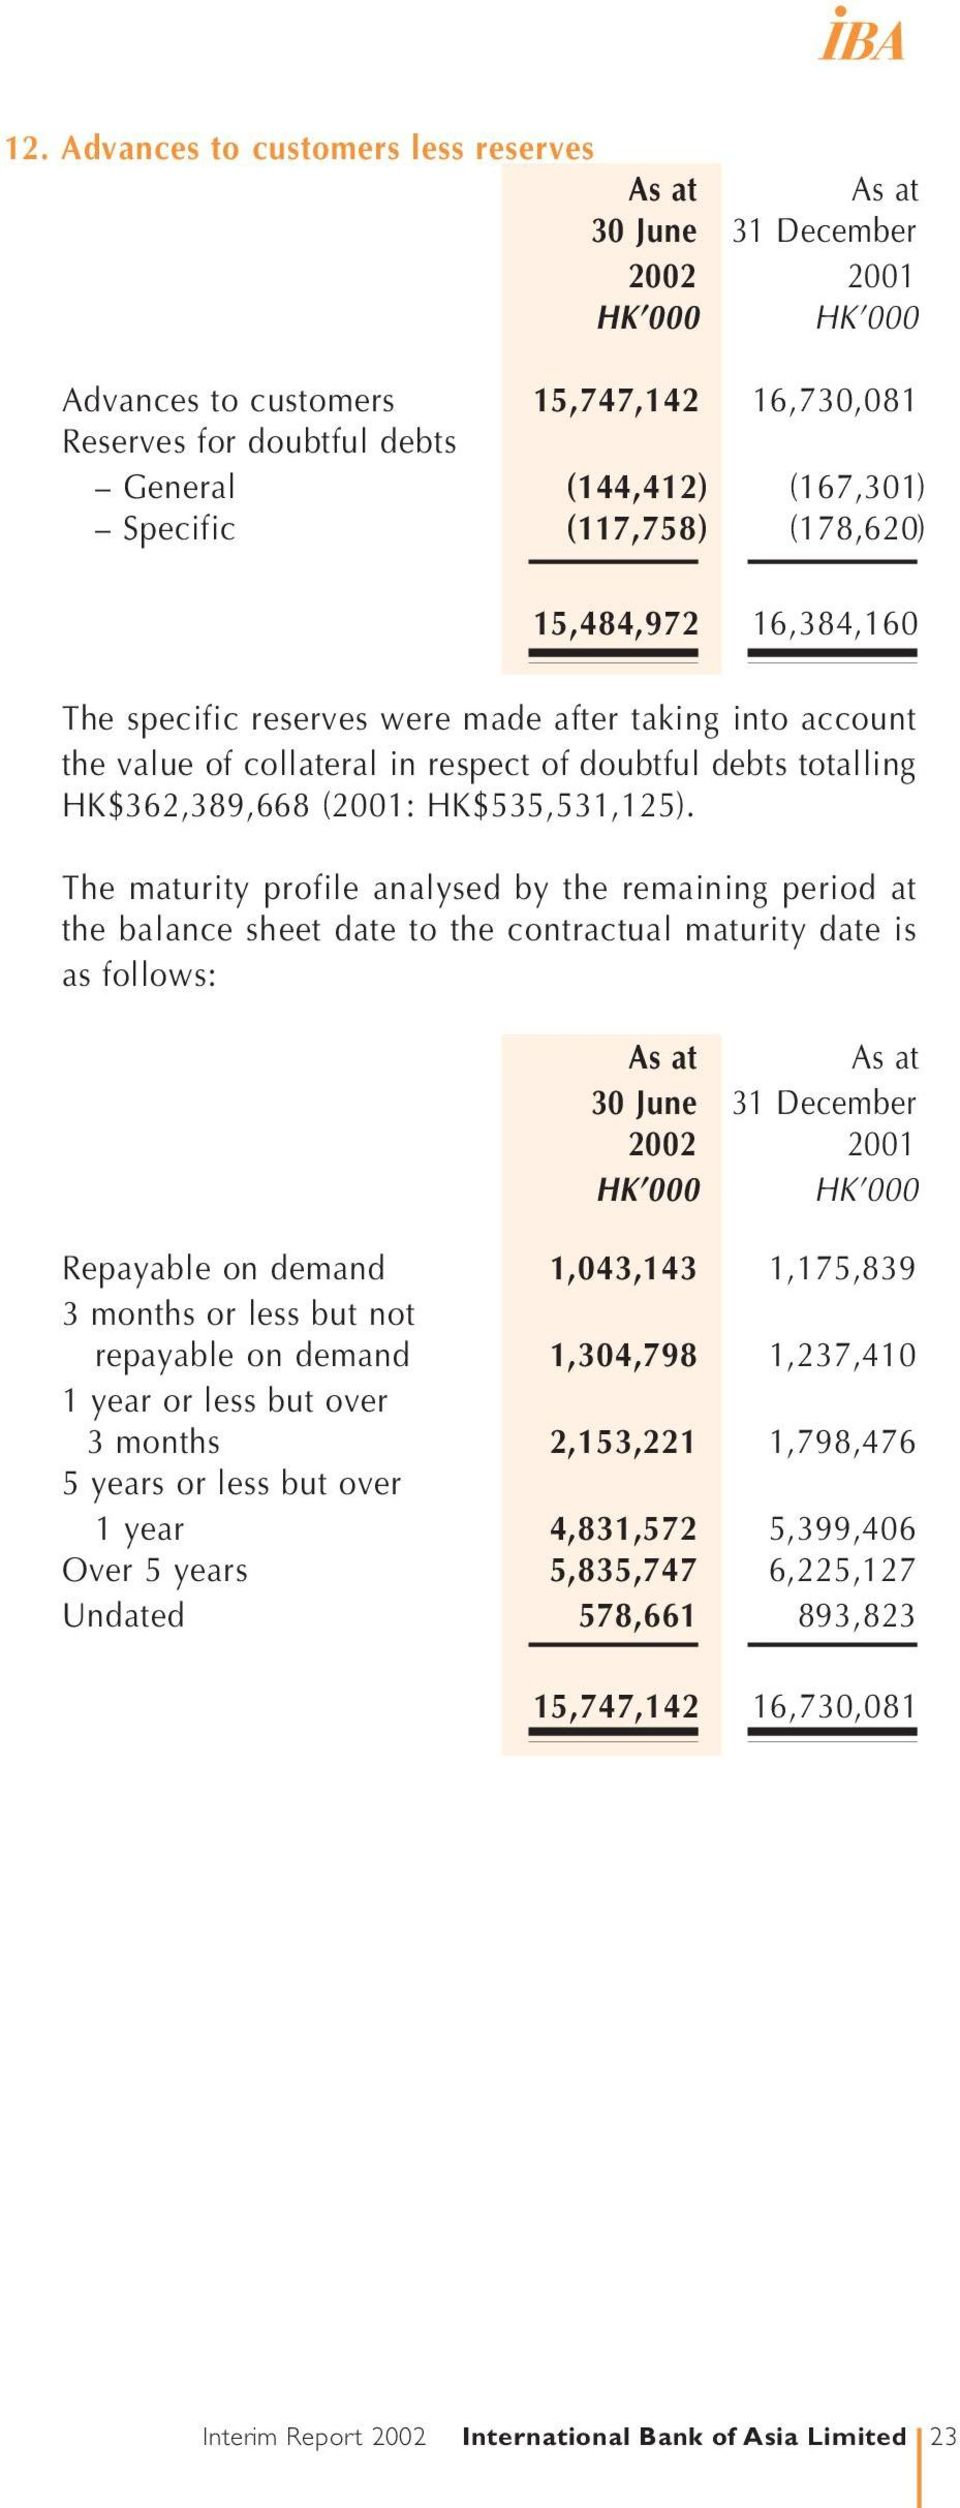 The maturity profile analysed by the remaining period at the balance sheet date to the contractual maturity date is as follows: Repayable on demand 1,043,143 1,175,839 3 months or less but not